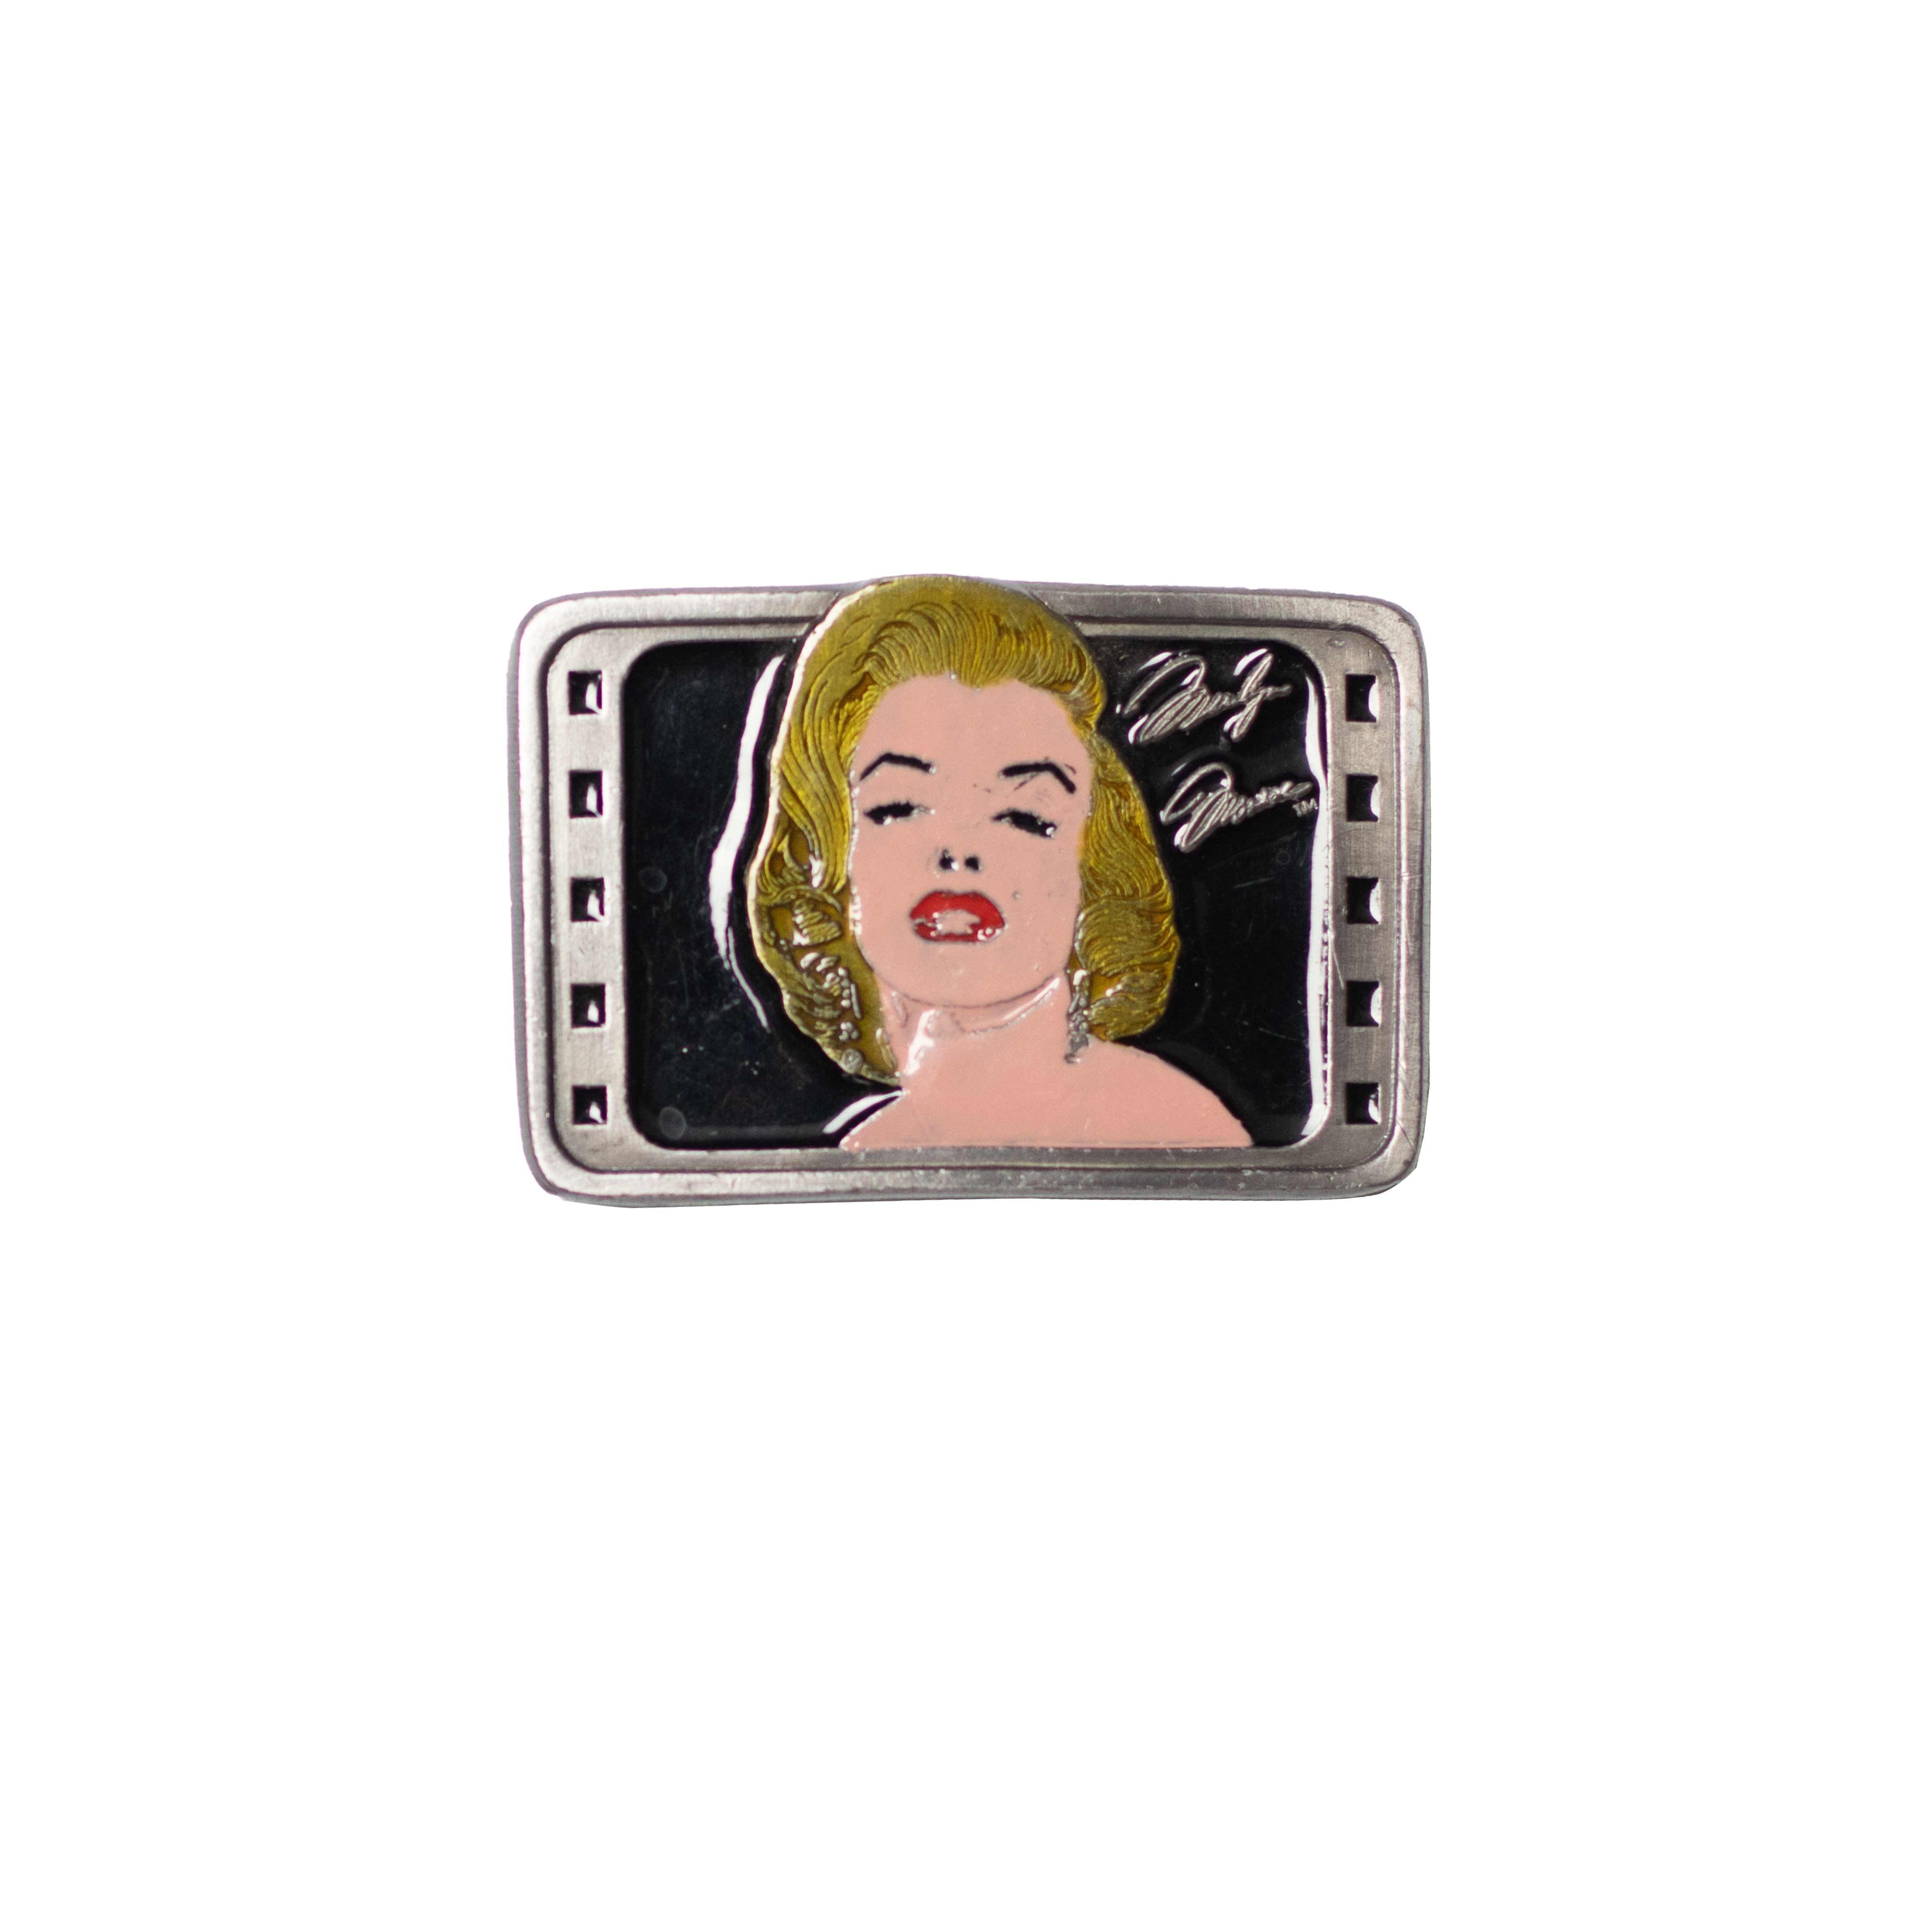 Marilyn Monrouge First Edition Buckle